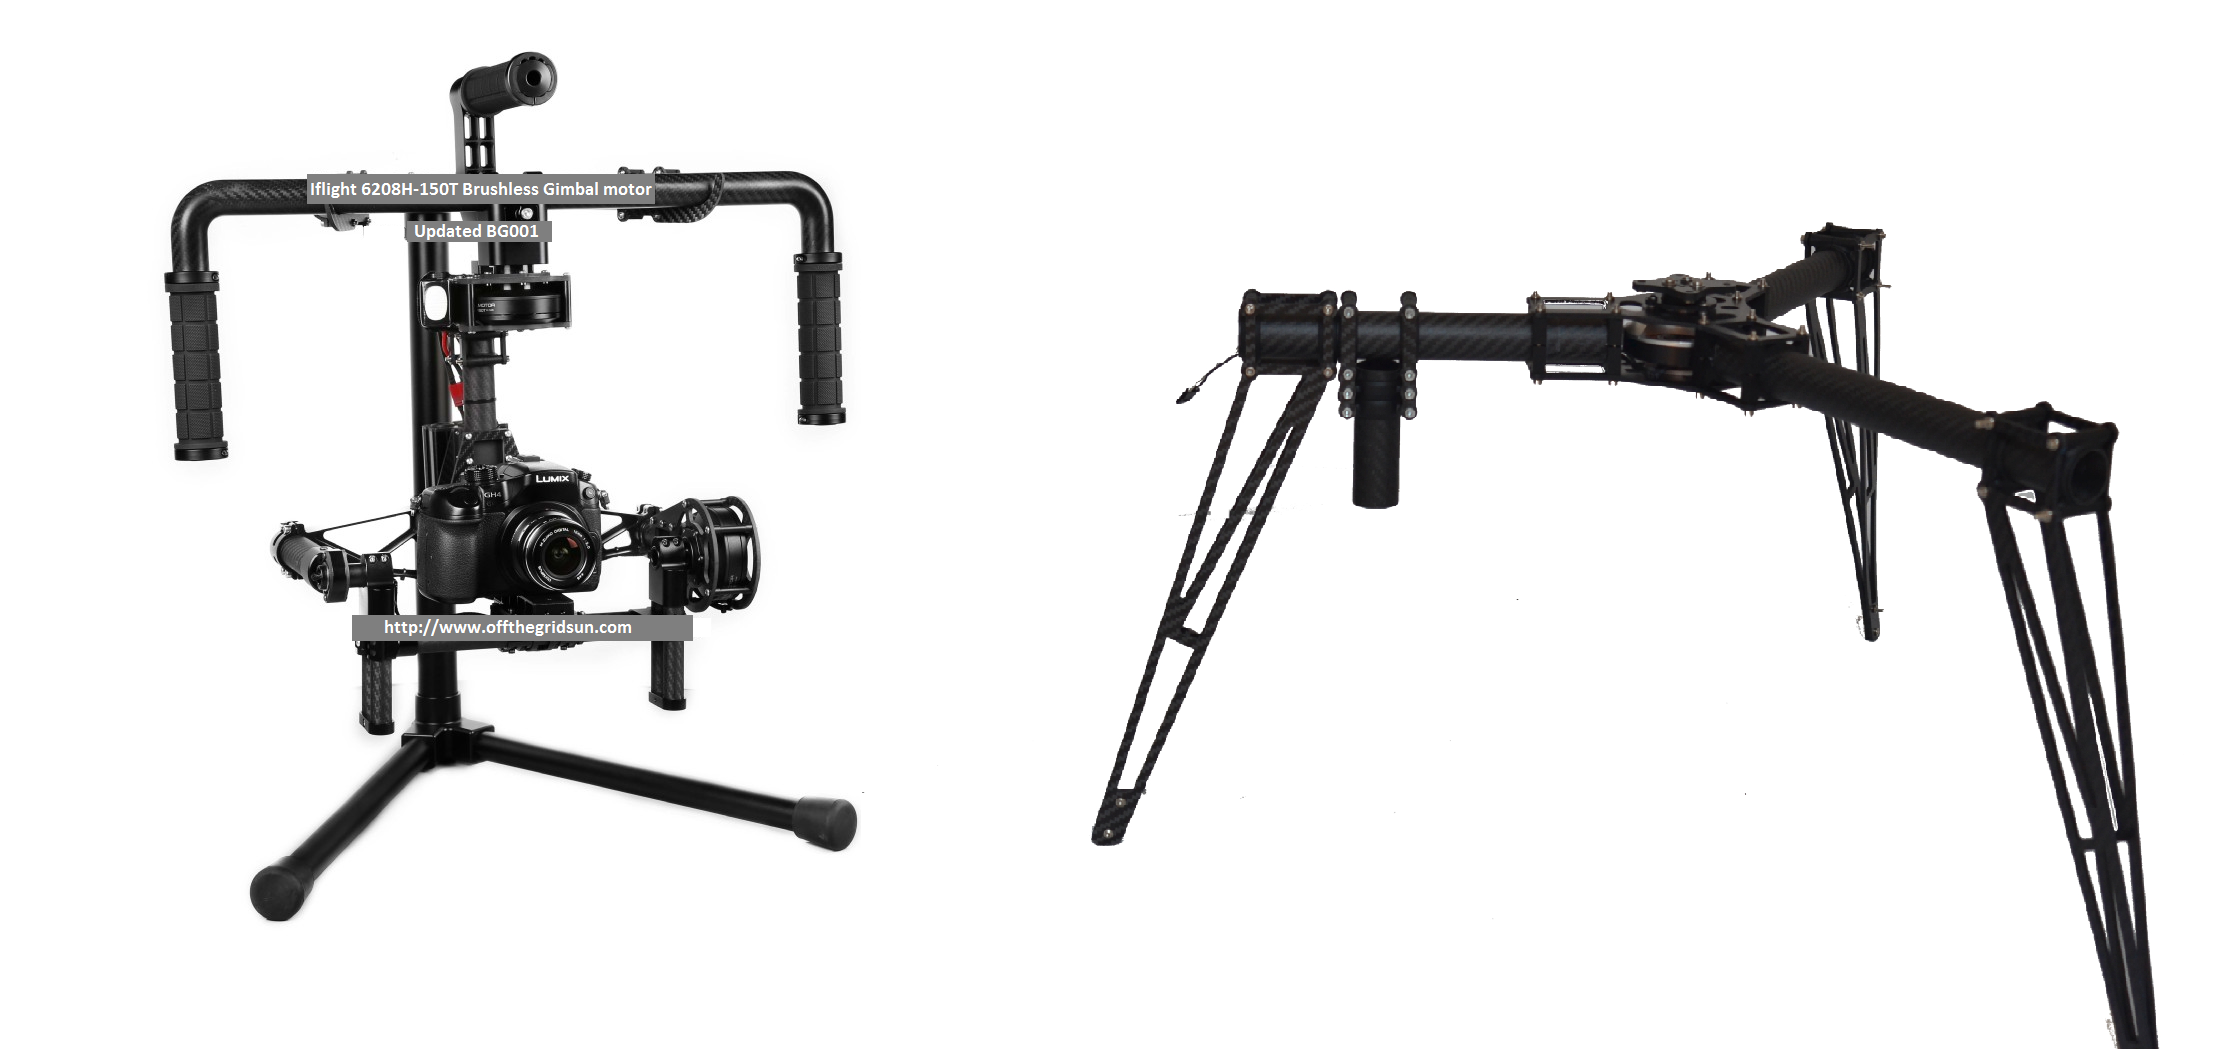 CINESTAR 3 Axis Brushless GIMBAL system & Steadicam LANDING GEAR